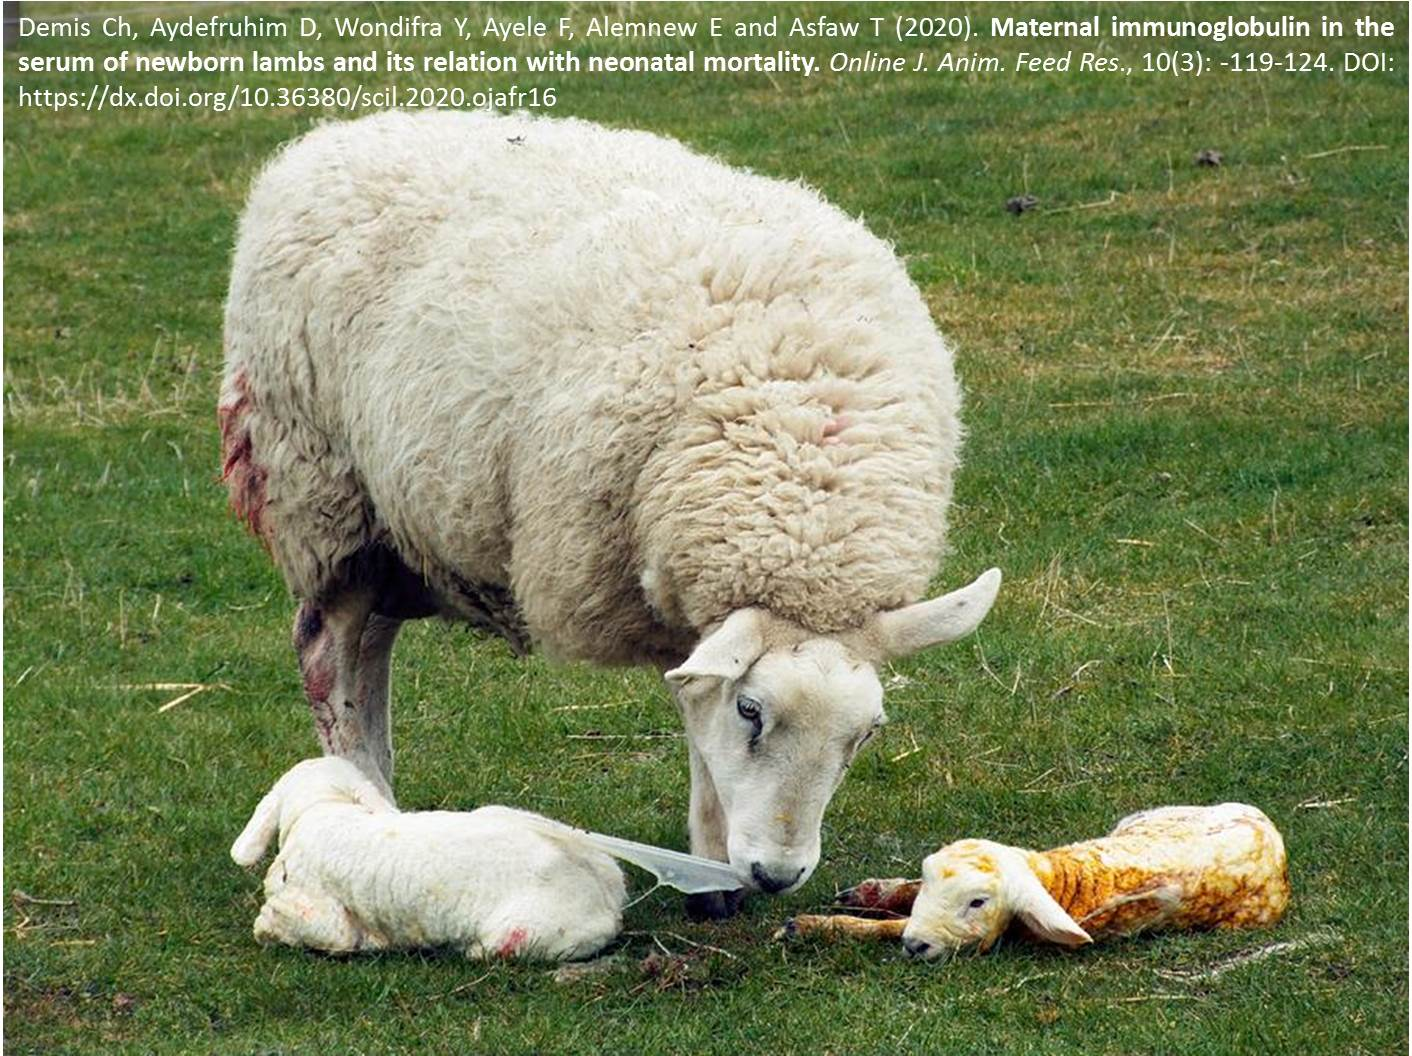 1166-neonatal_mortality_of_newborn_lambs